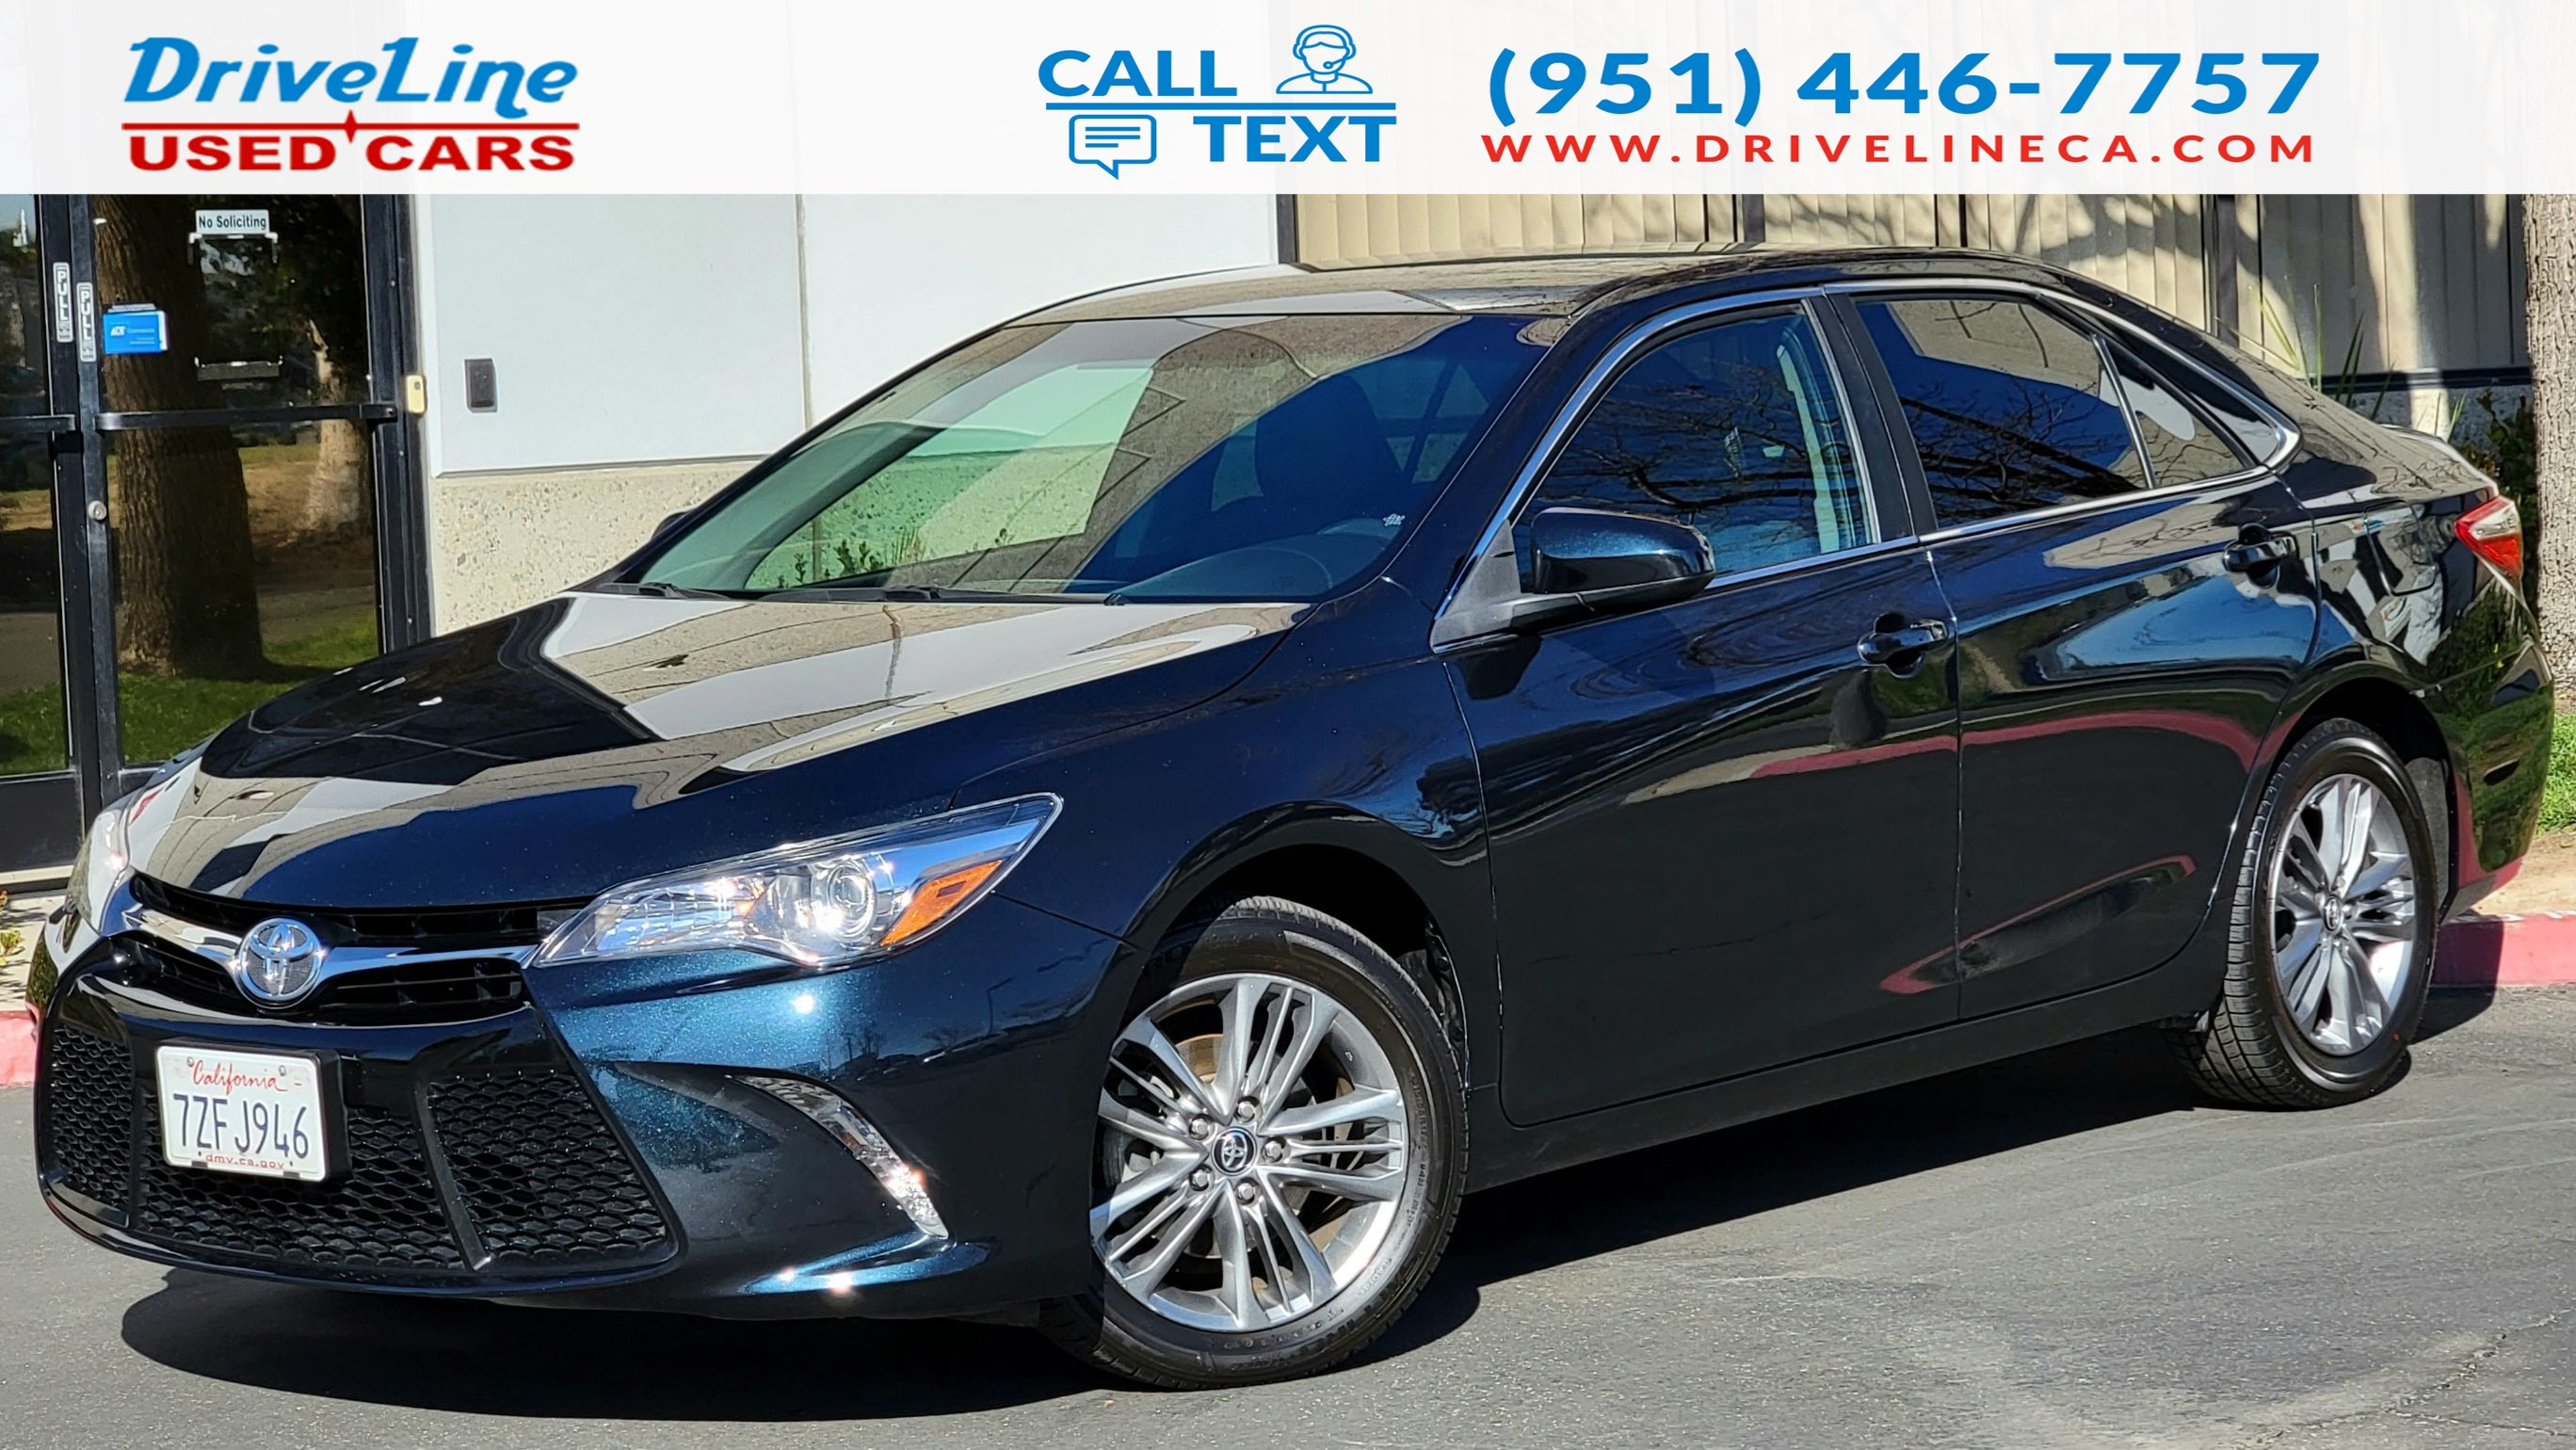 2017 Toyota Camry SE - Rear View Camera - Bluetooth - $23,840 MSRP